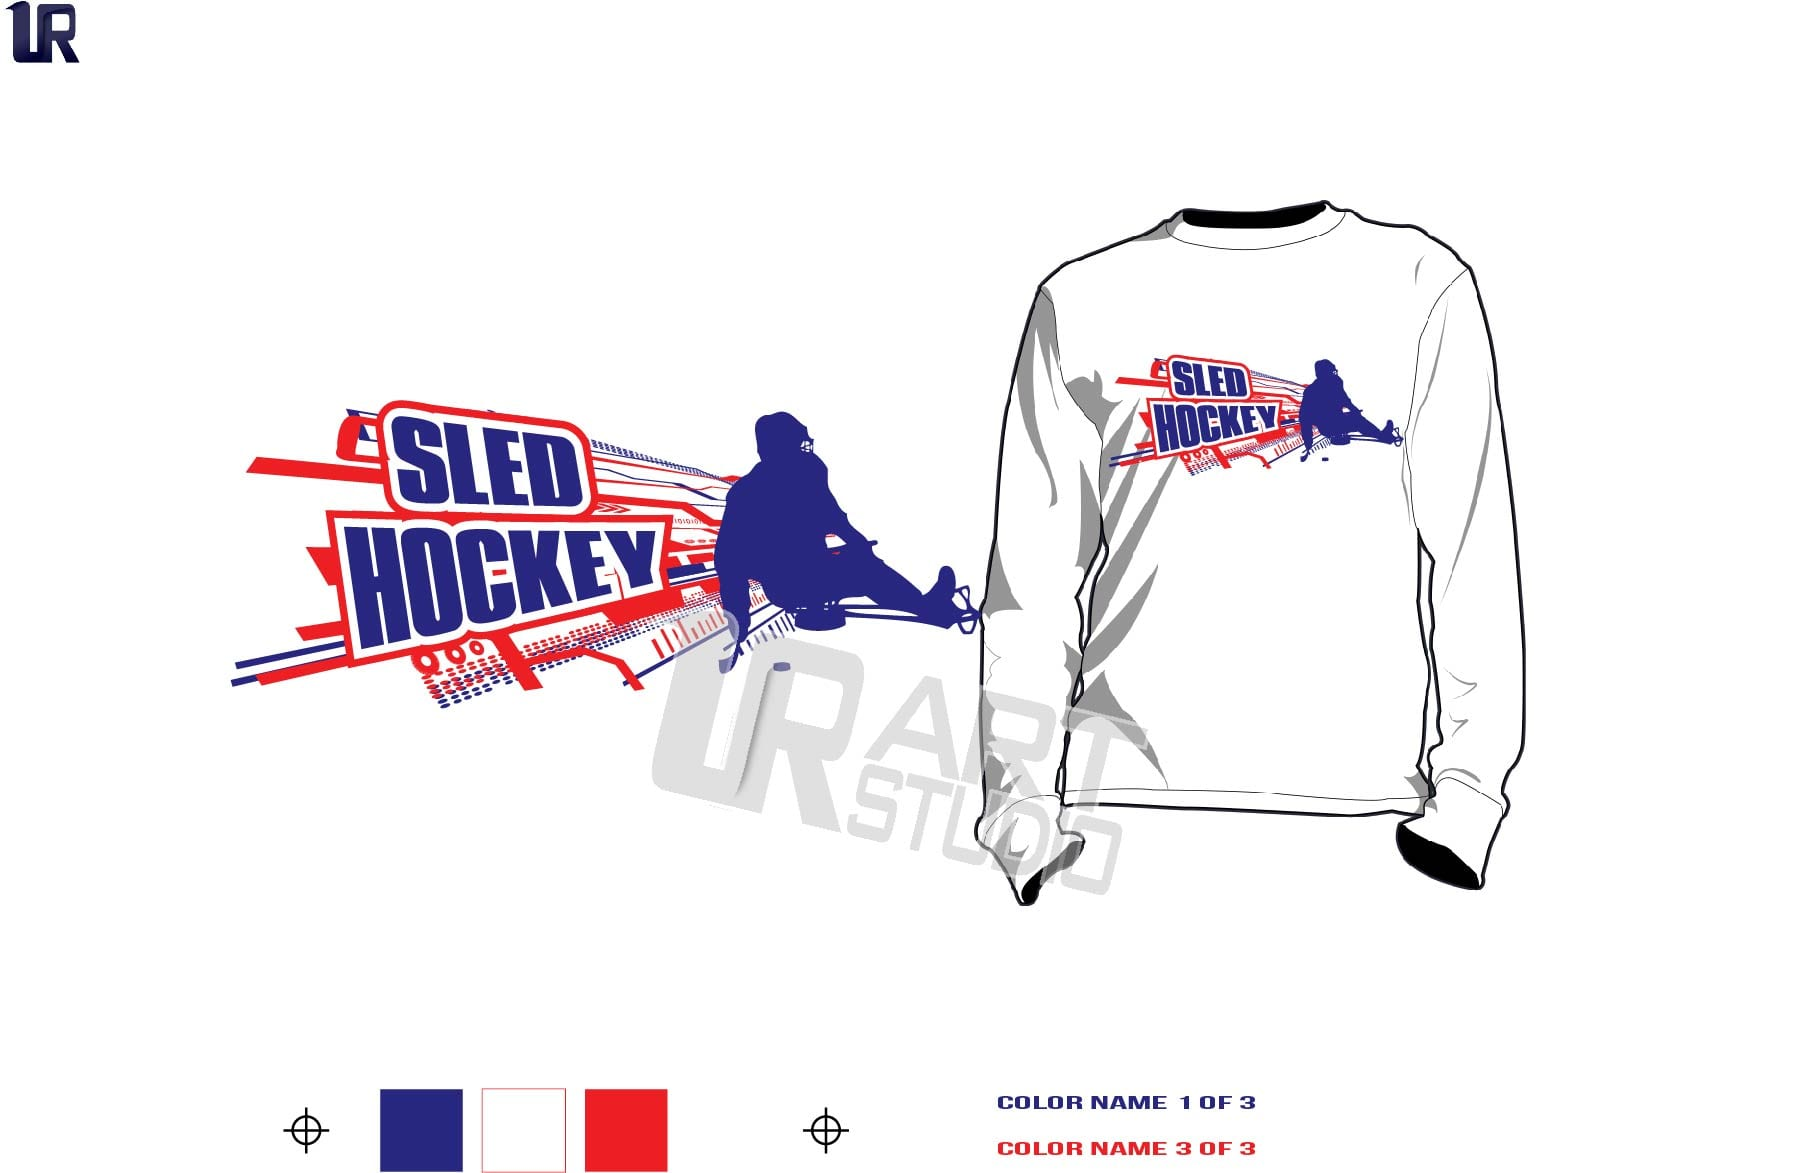 SLED HOCKEY tshirt vector design 3 colors separated for print layered